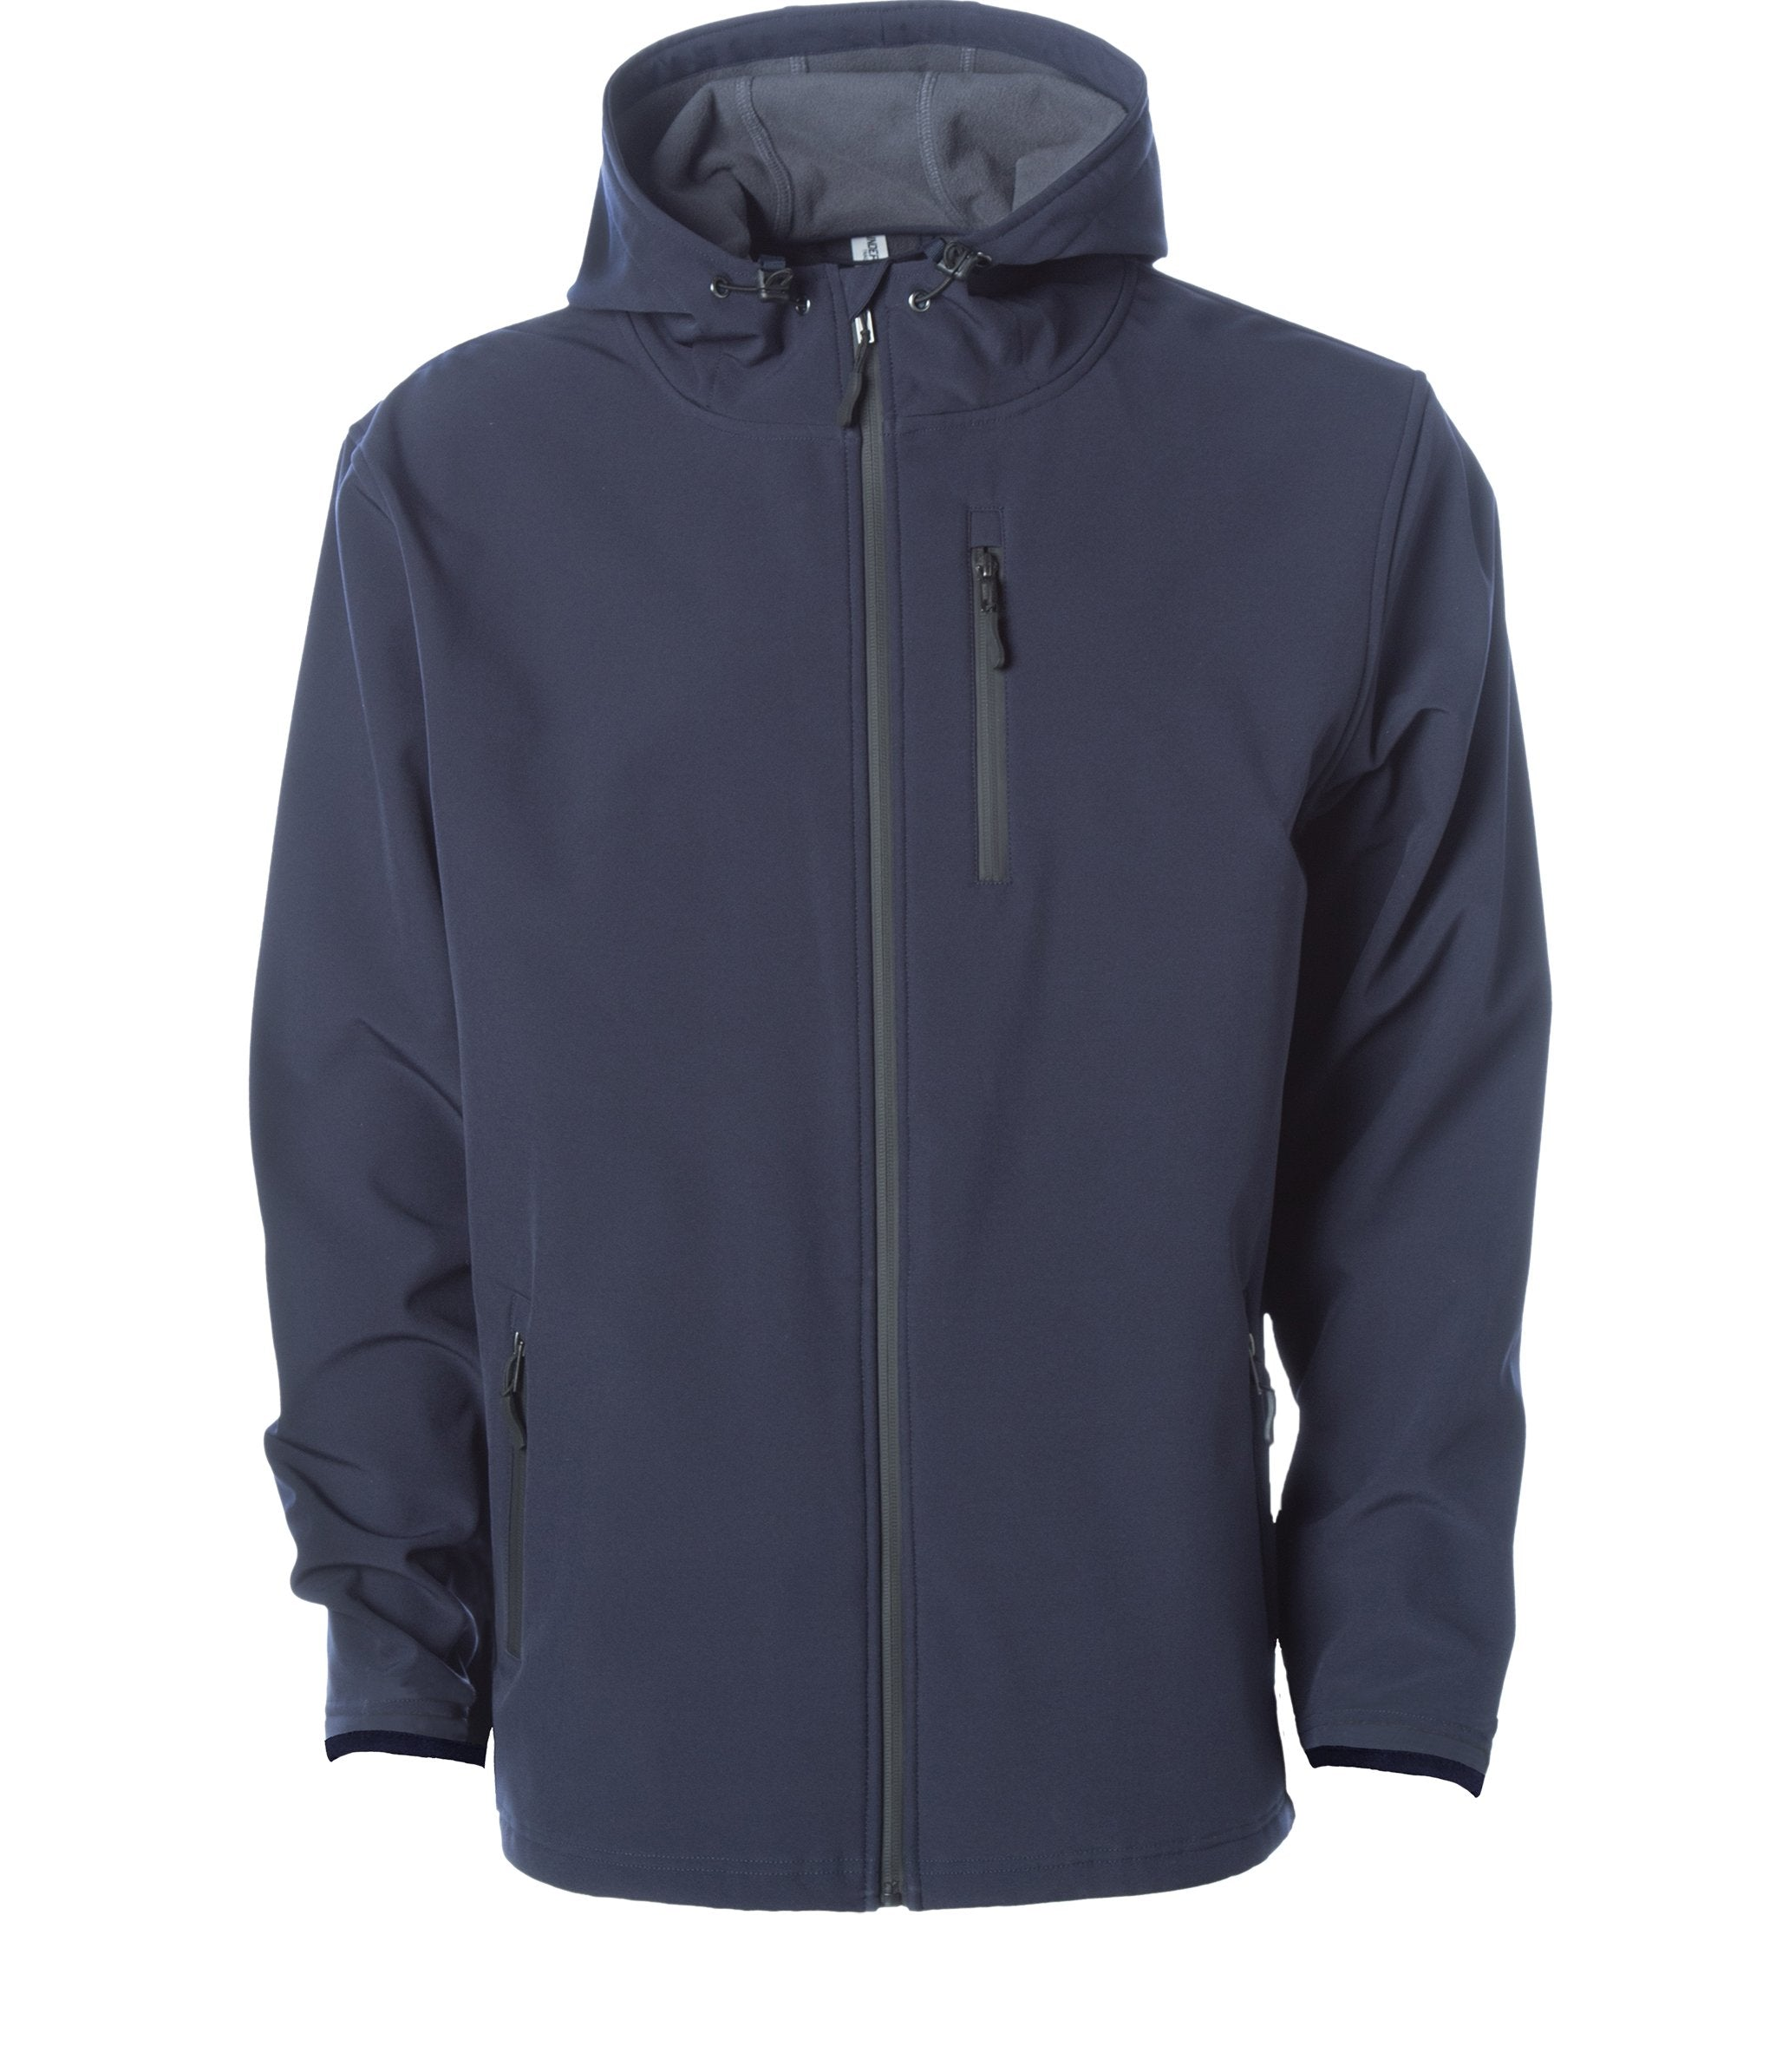 Poly-Tech Water Resistant Soft Shell Jacket in Classic Navy